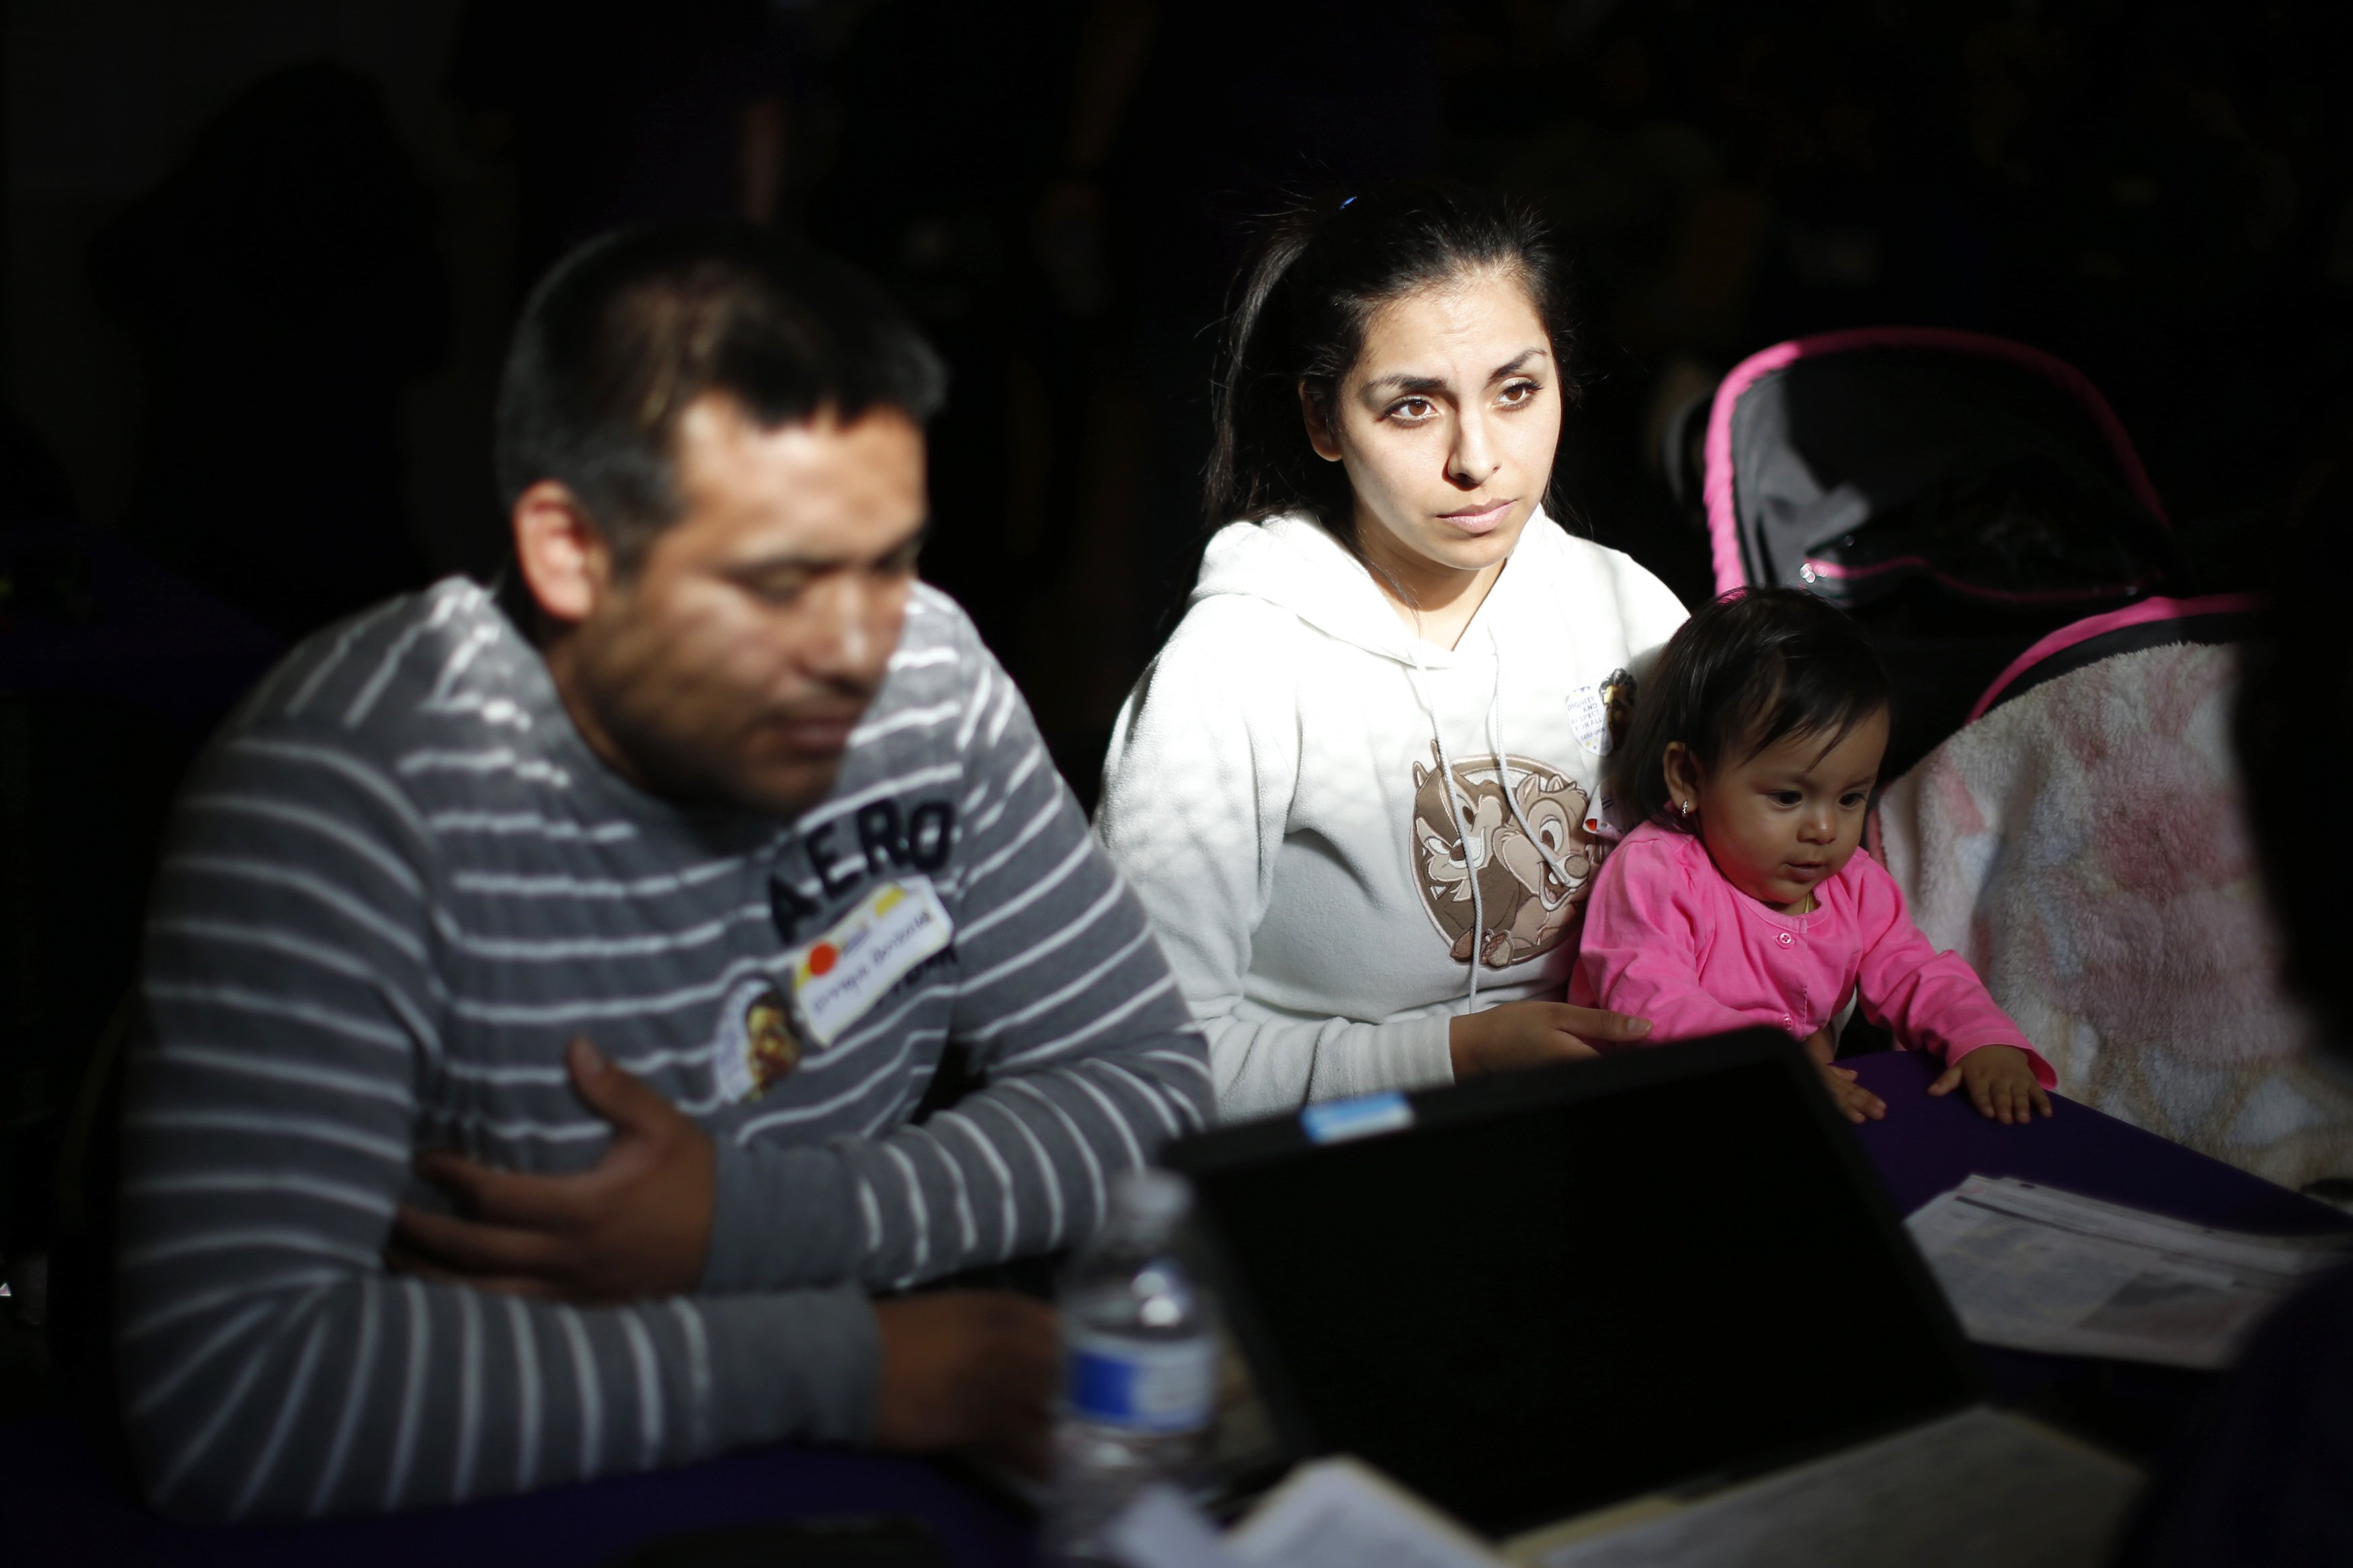 From left: Enrique Gonzalez, 22, Janet Regalado, 21, and their nine-month-old daughter Kayleen Gonzalez sign up for health insurance at an enrolment event in Commerce, Calif., on March 31, 2014.